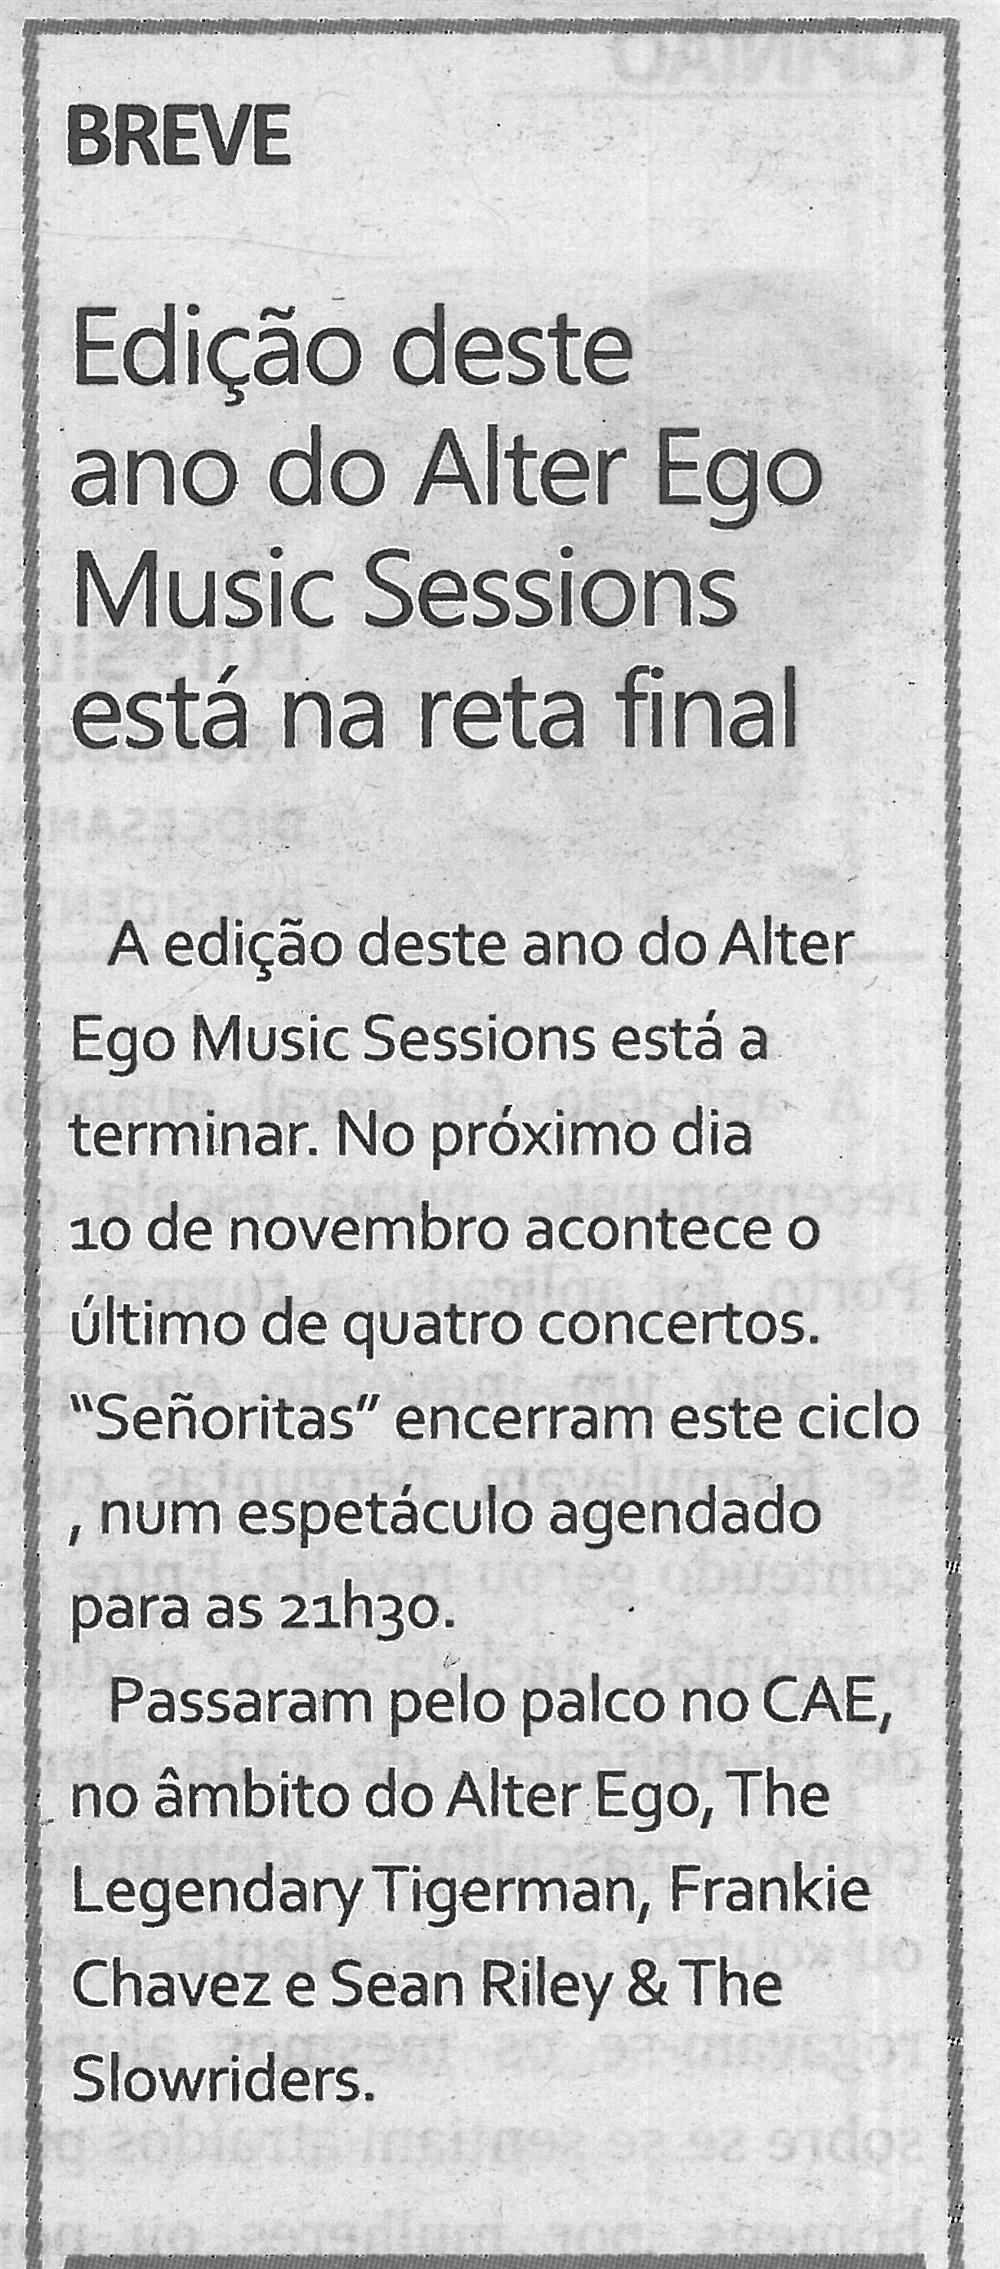 TV-nov.'18-p.15-Edição deste ano do Alter Ego Music Sessions está na reta final.jpg